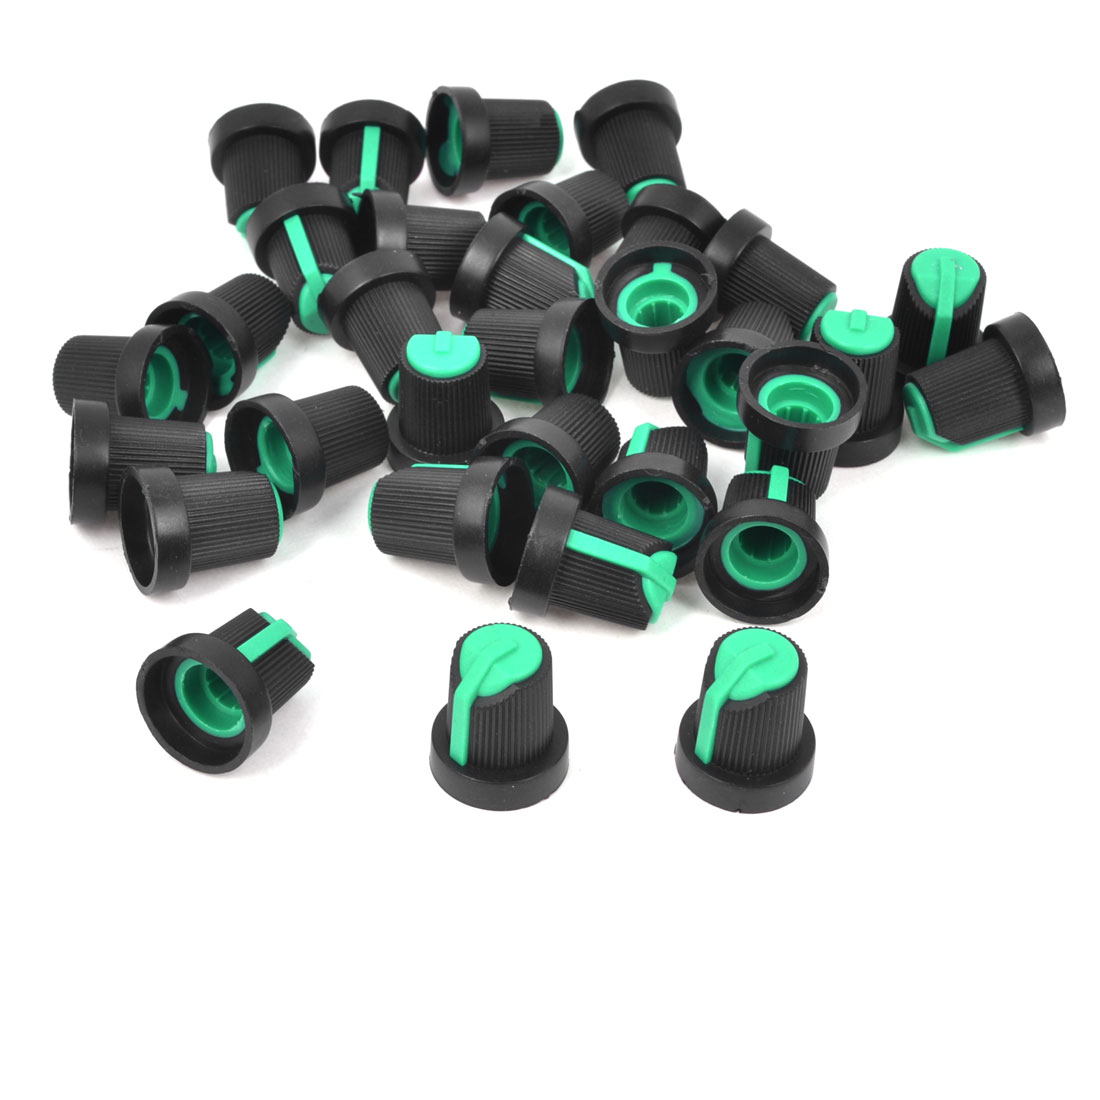 32pcs 6mm Knurled Shaft Green Top Taper Volume Knob Cap for Potentiometer Pot